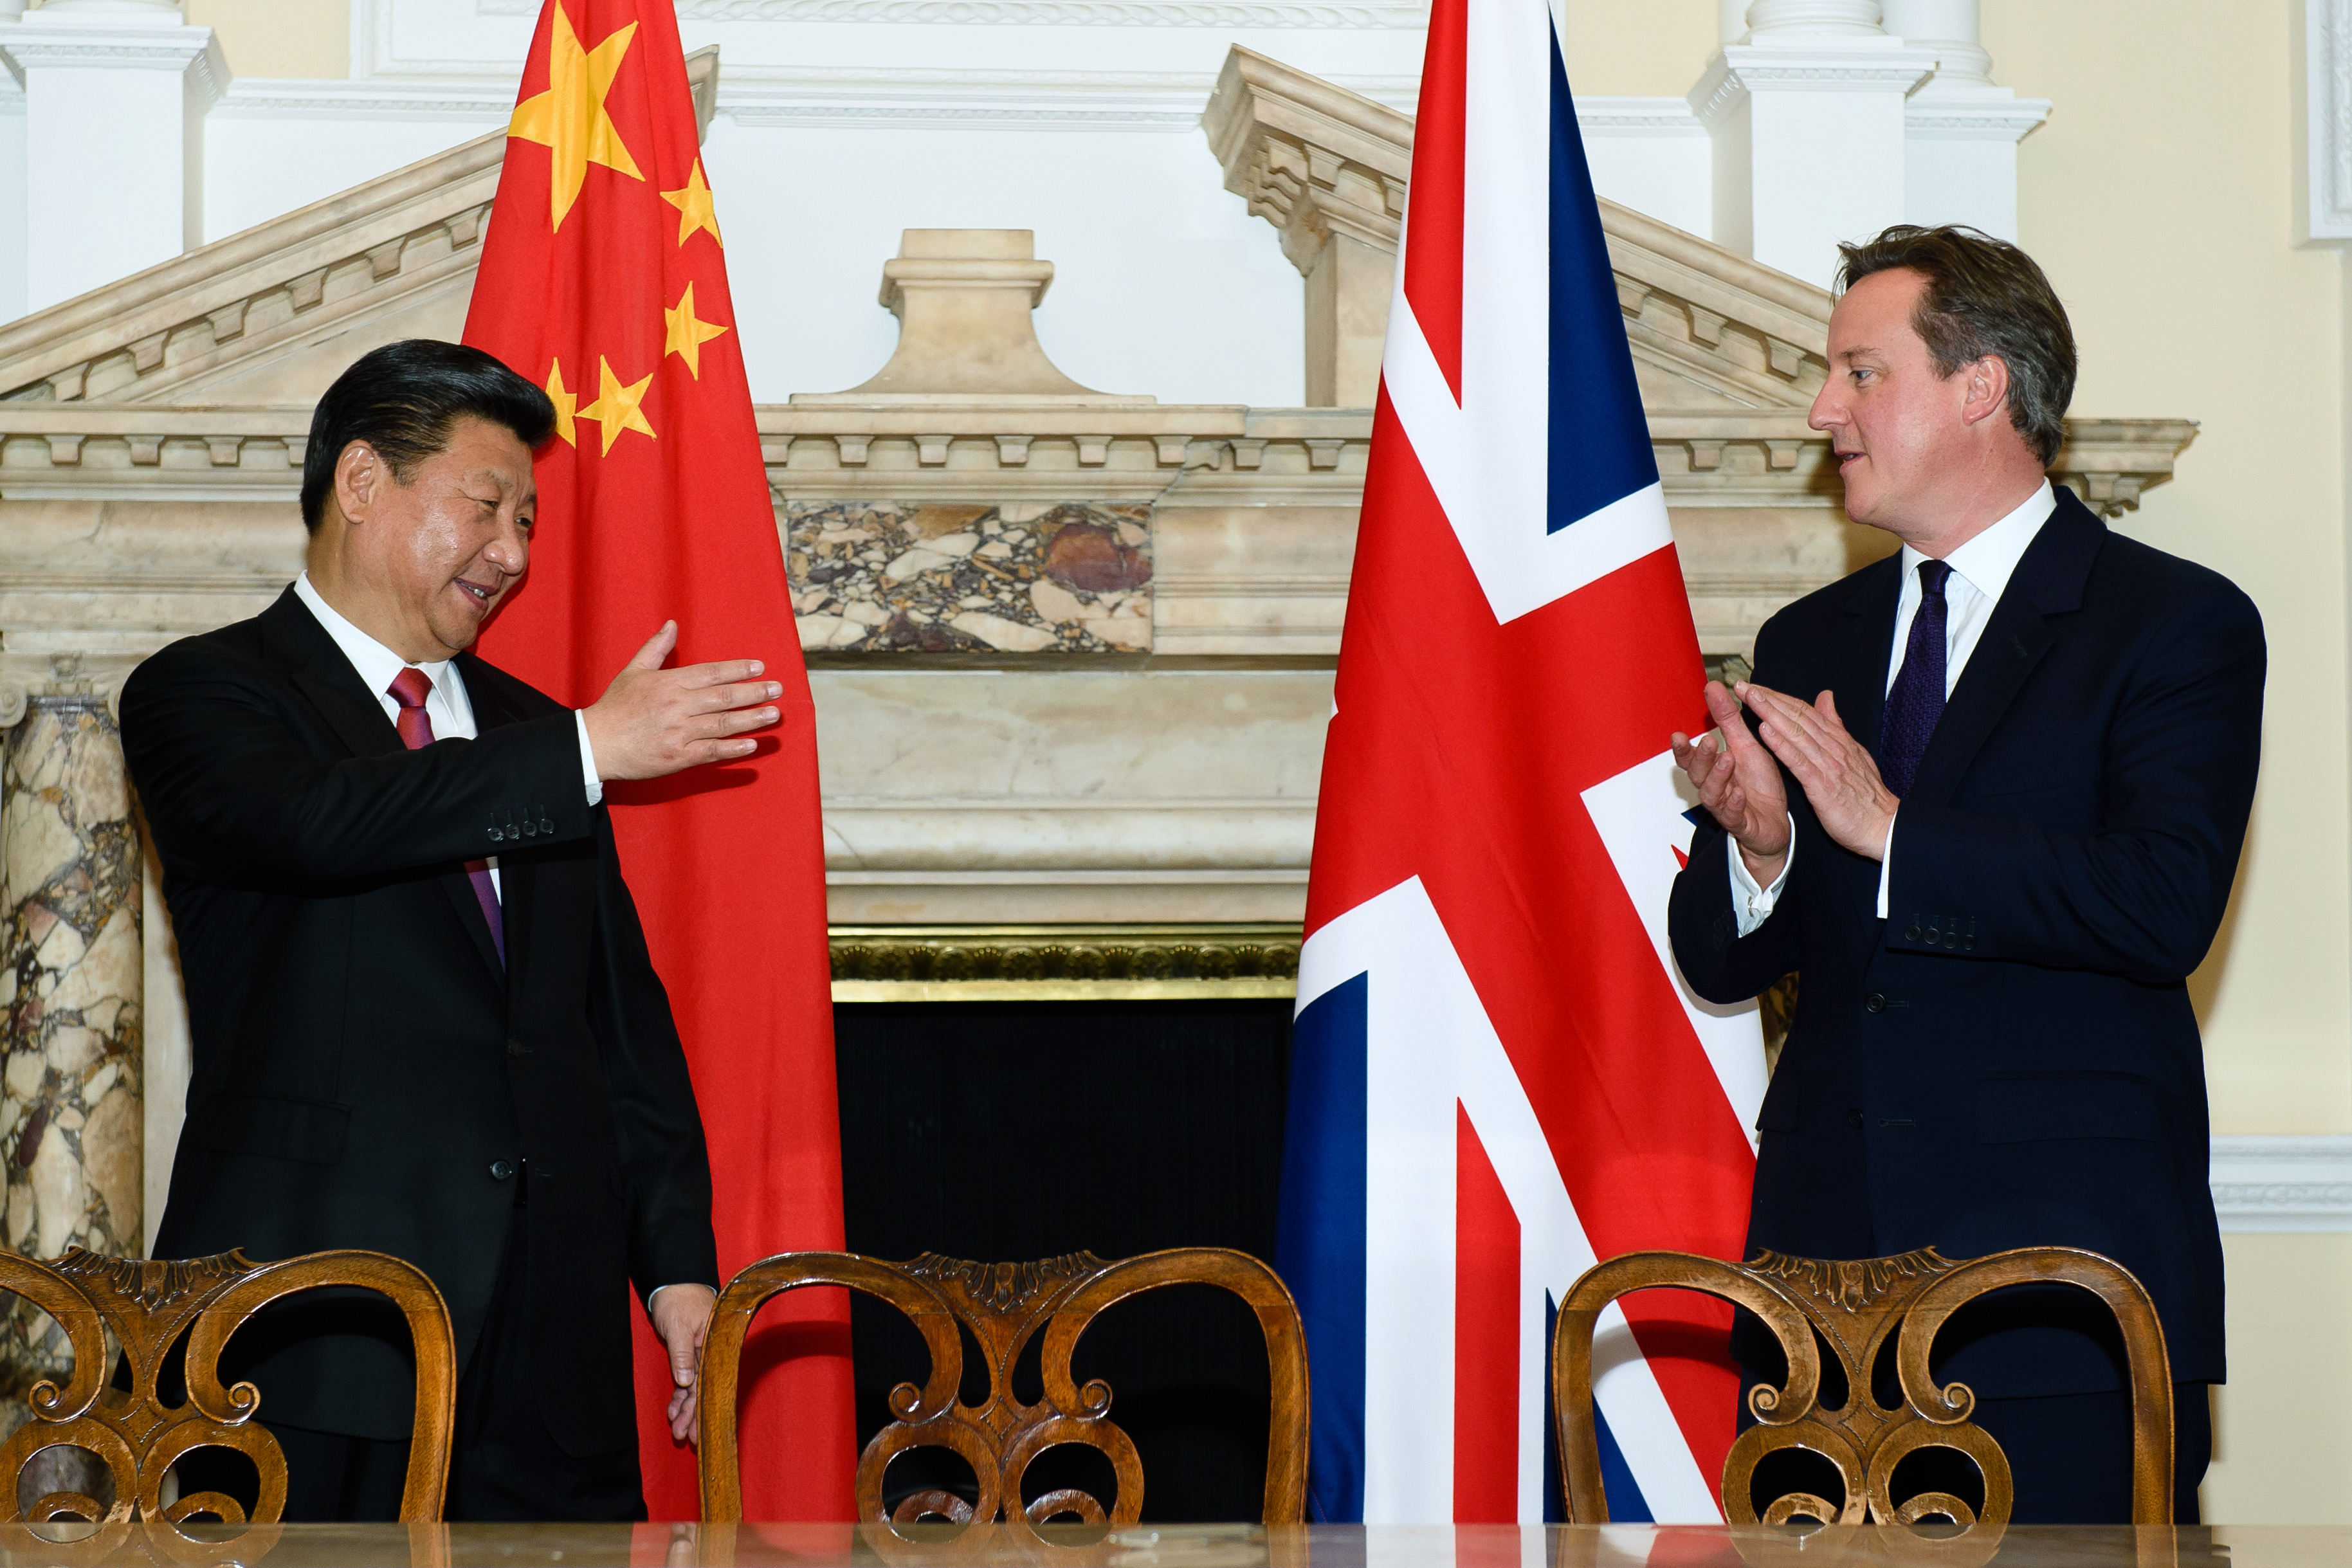 David Cameron and Xi Jinping applaud in front of their countries' flags during a commercial contract exchange in 2015.